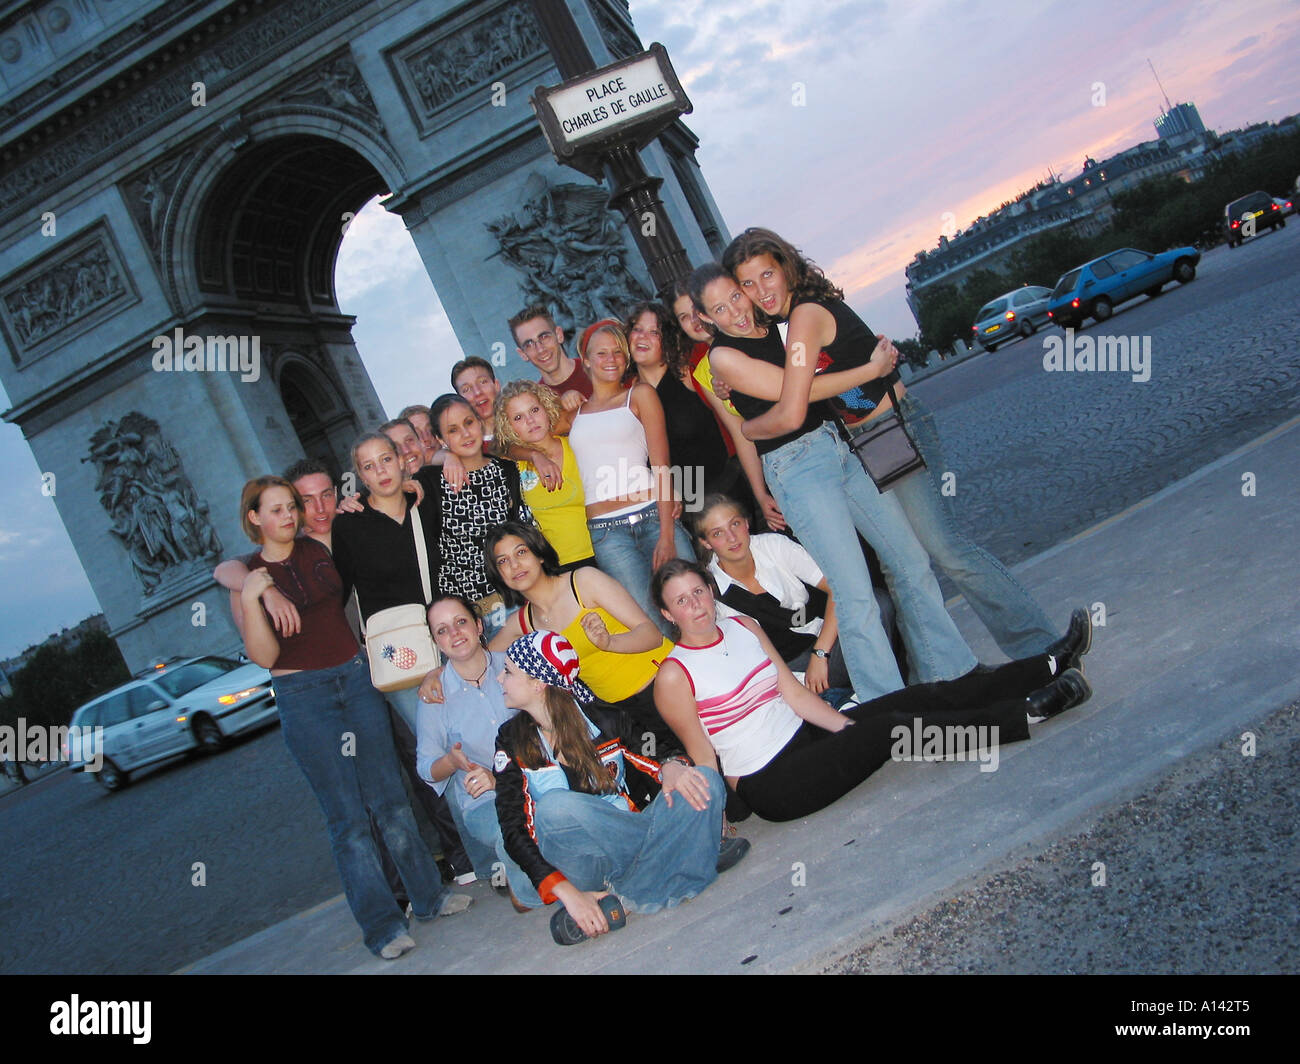 school group of young adults posing in front of Arc de Triomphe Paris France at dusk - Stock Image